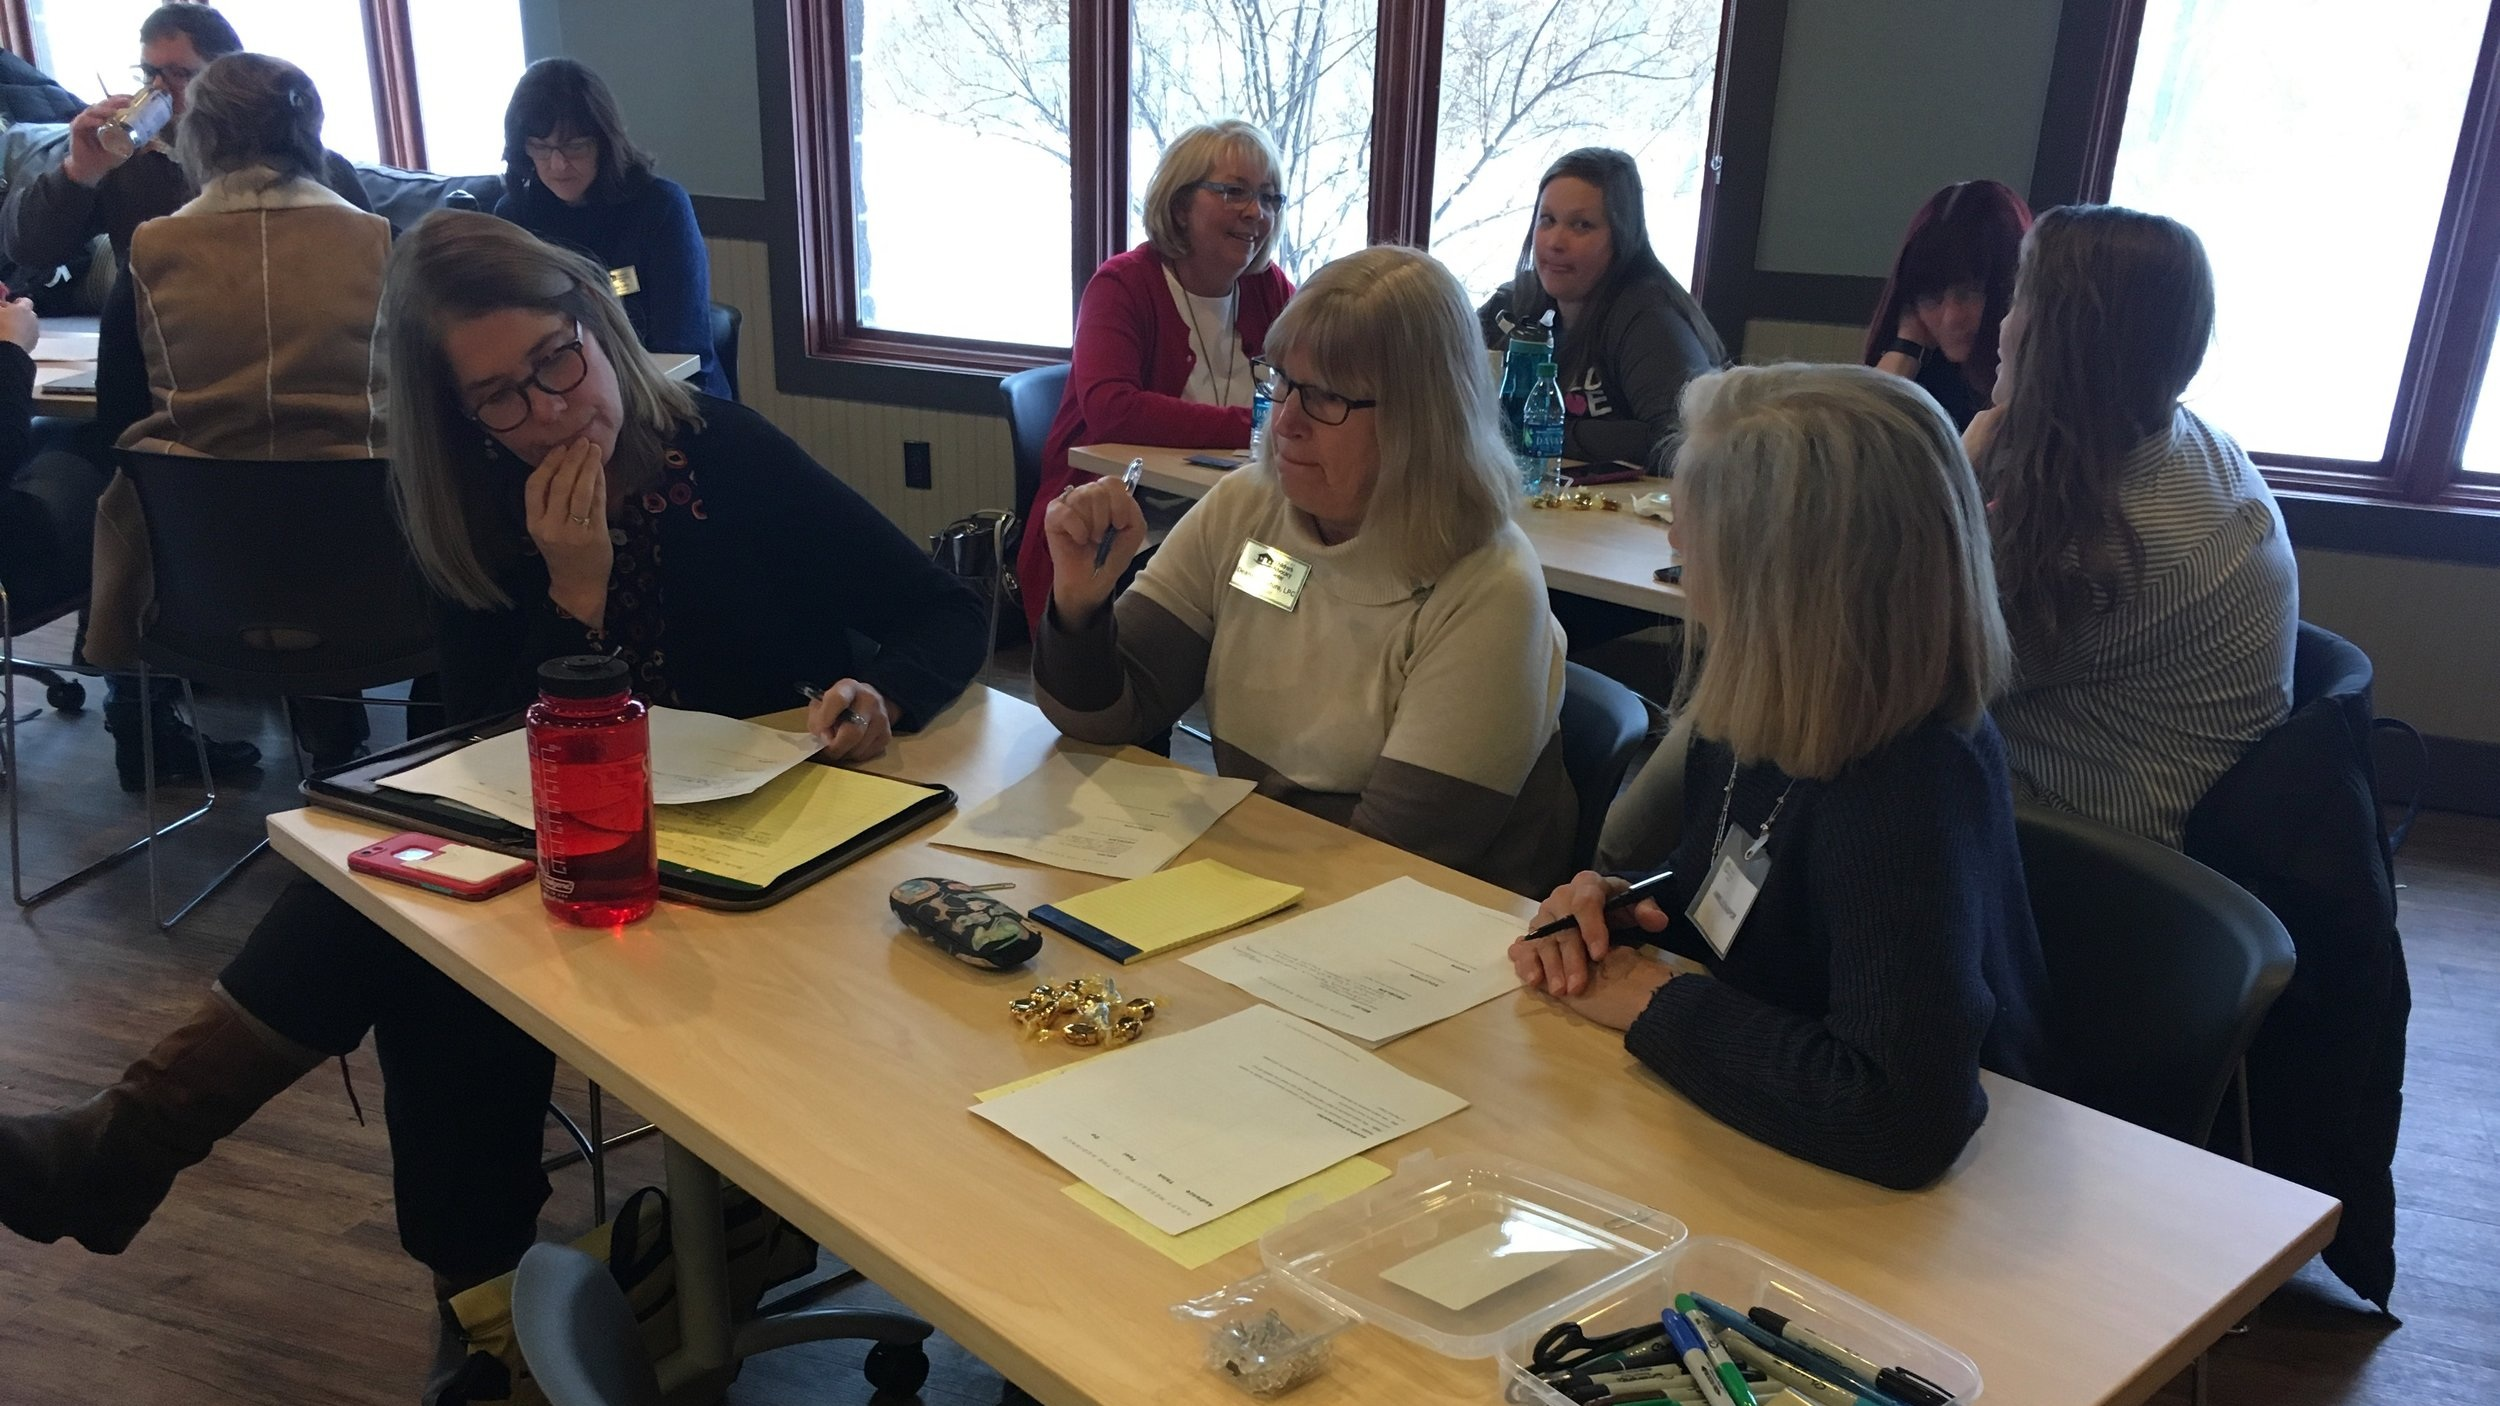 Participants were given ample time to compose their stories before receiving feedback from the group.